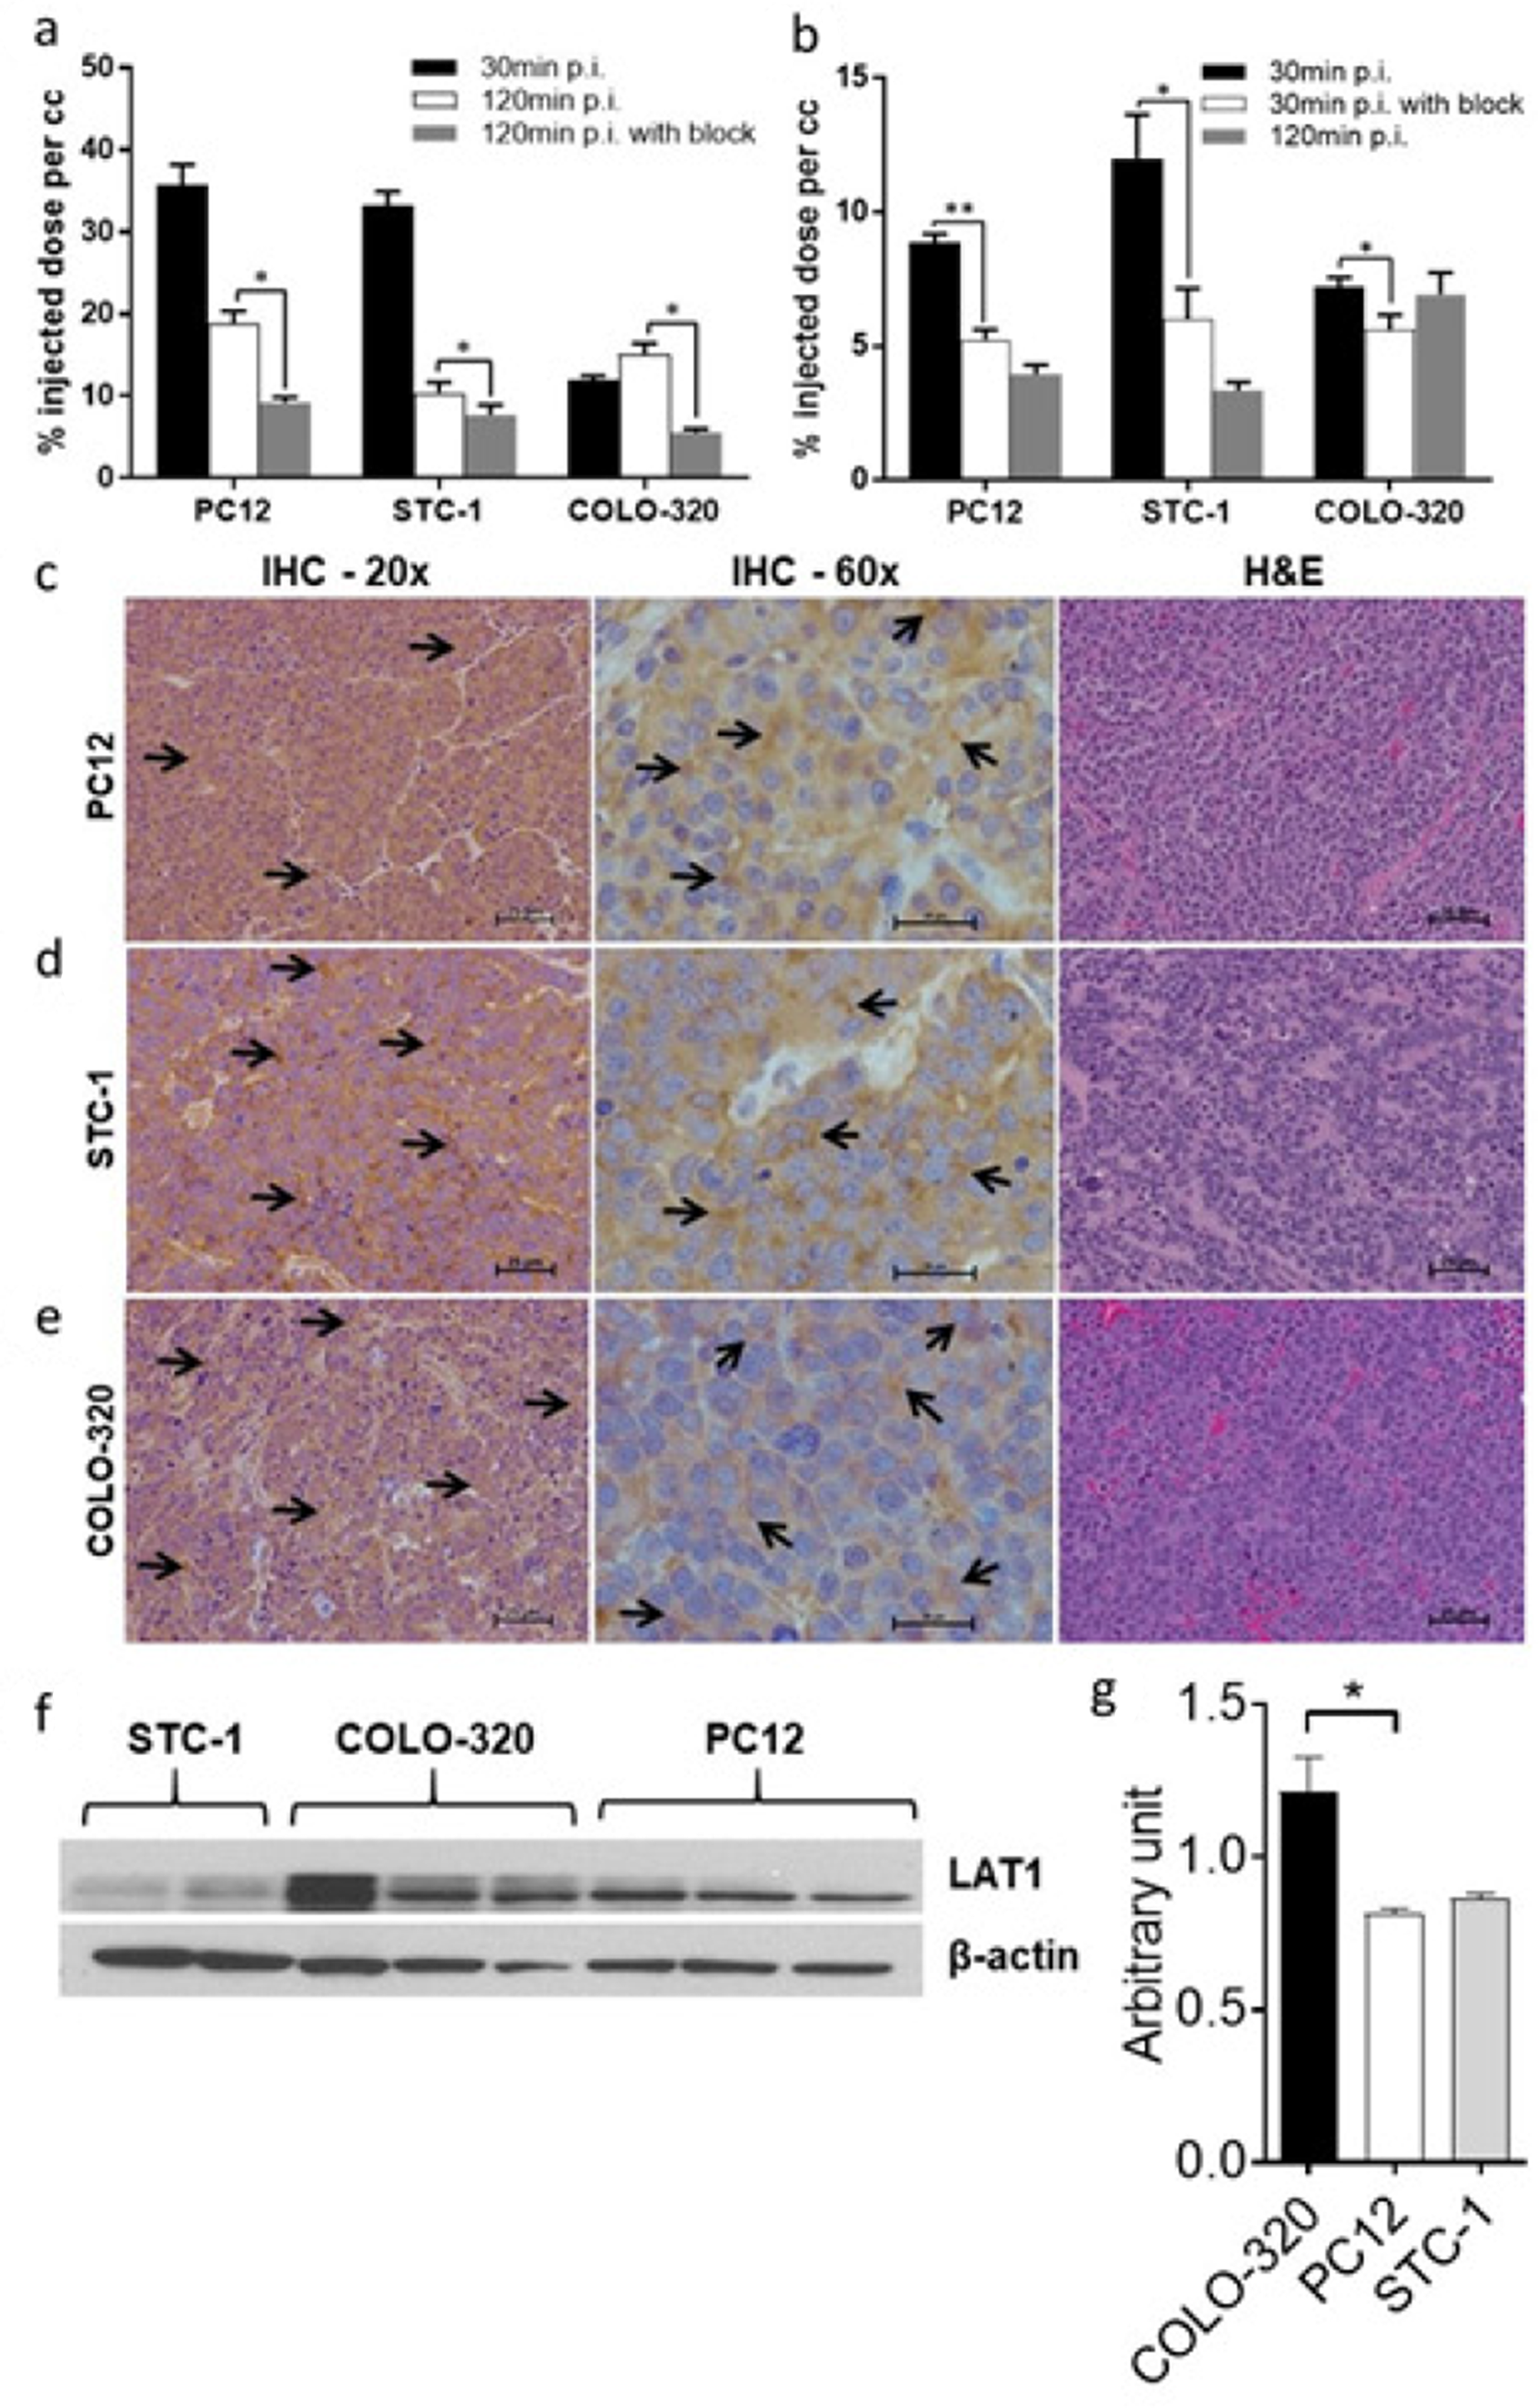 Analysis of PET images and excised tumor tissues.